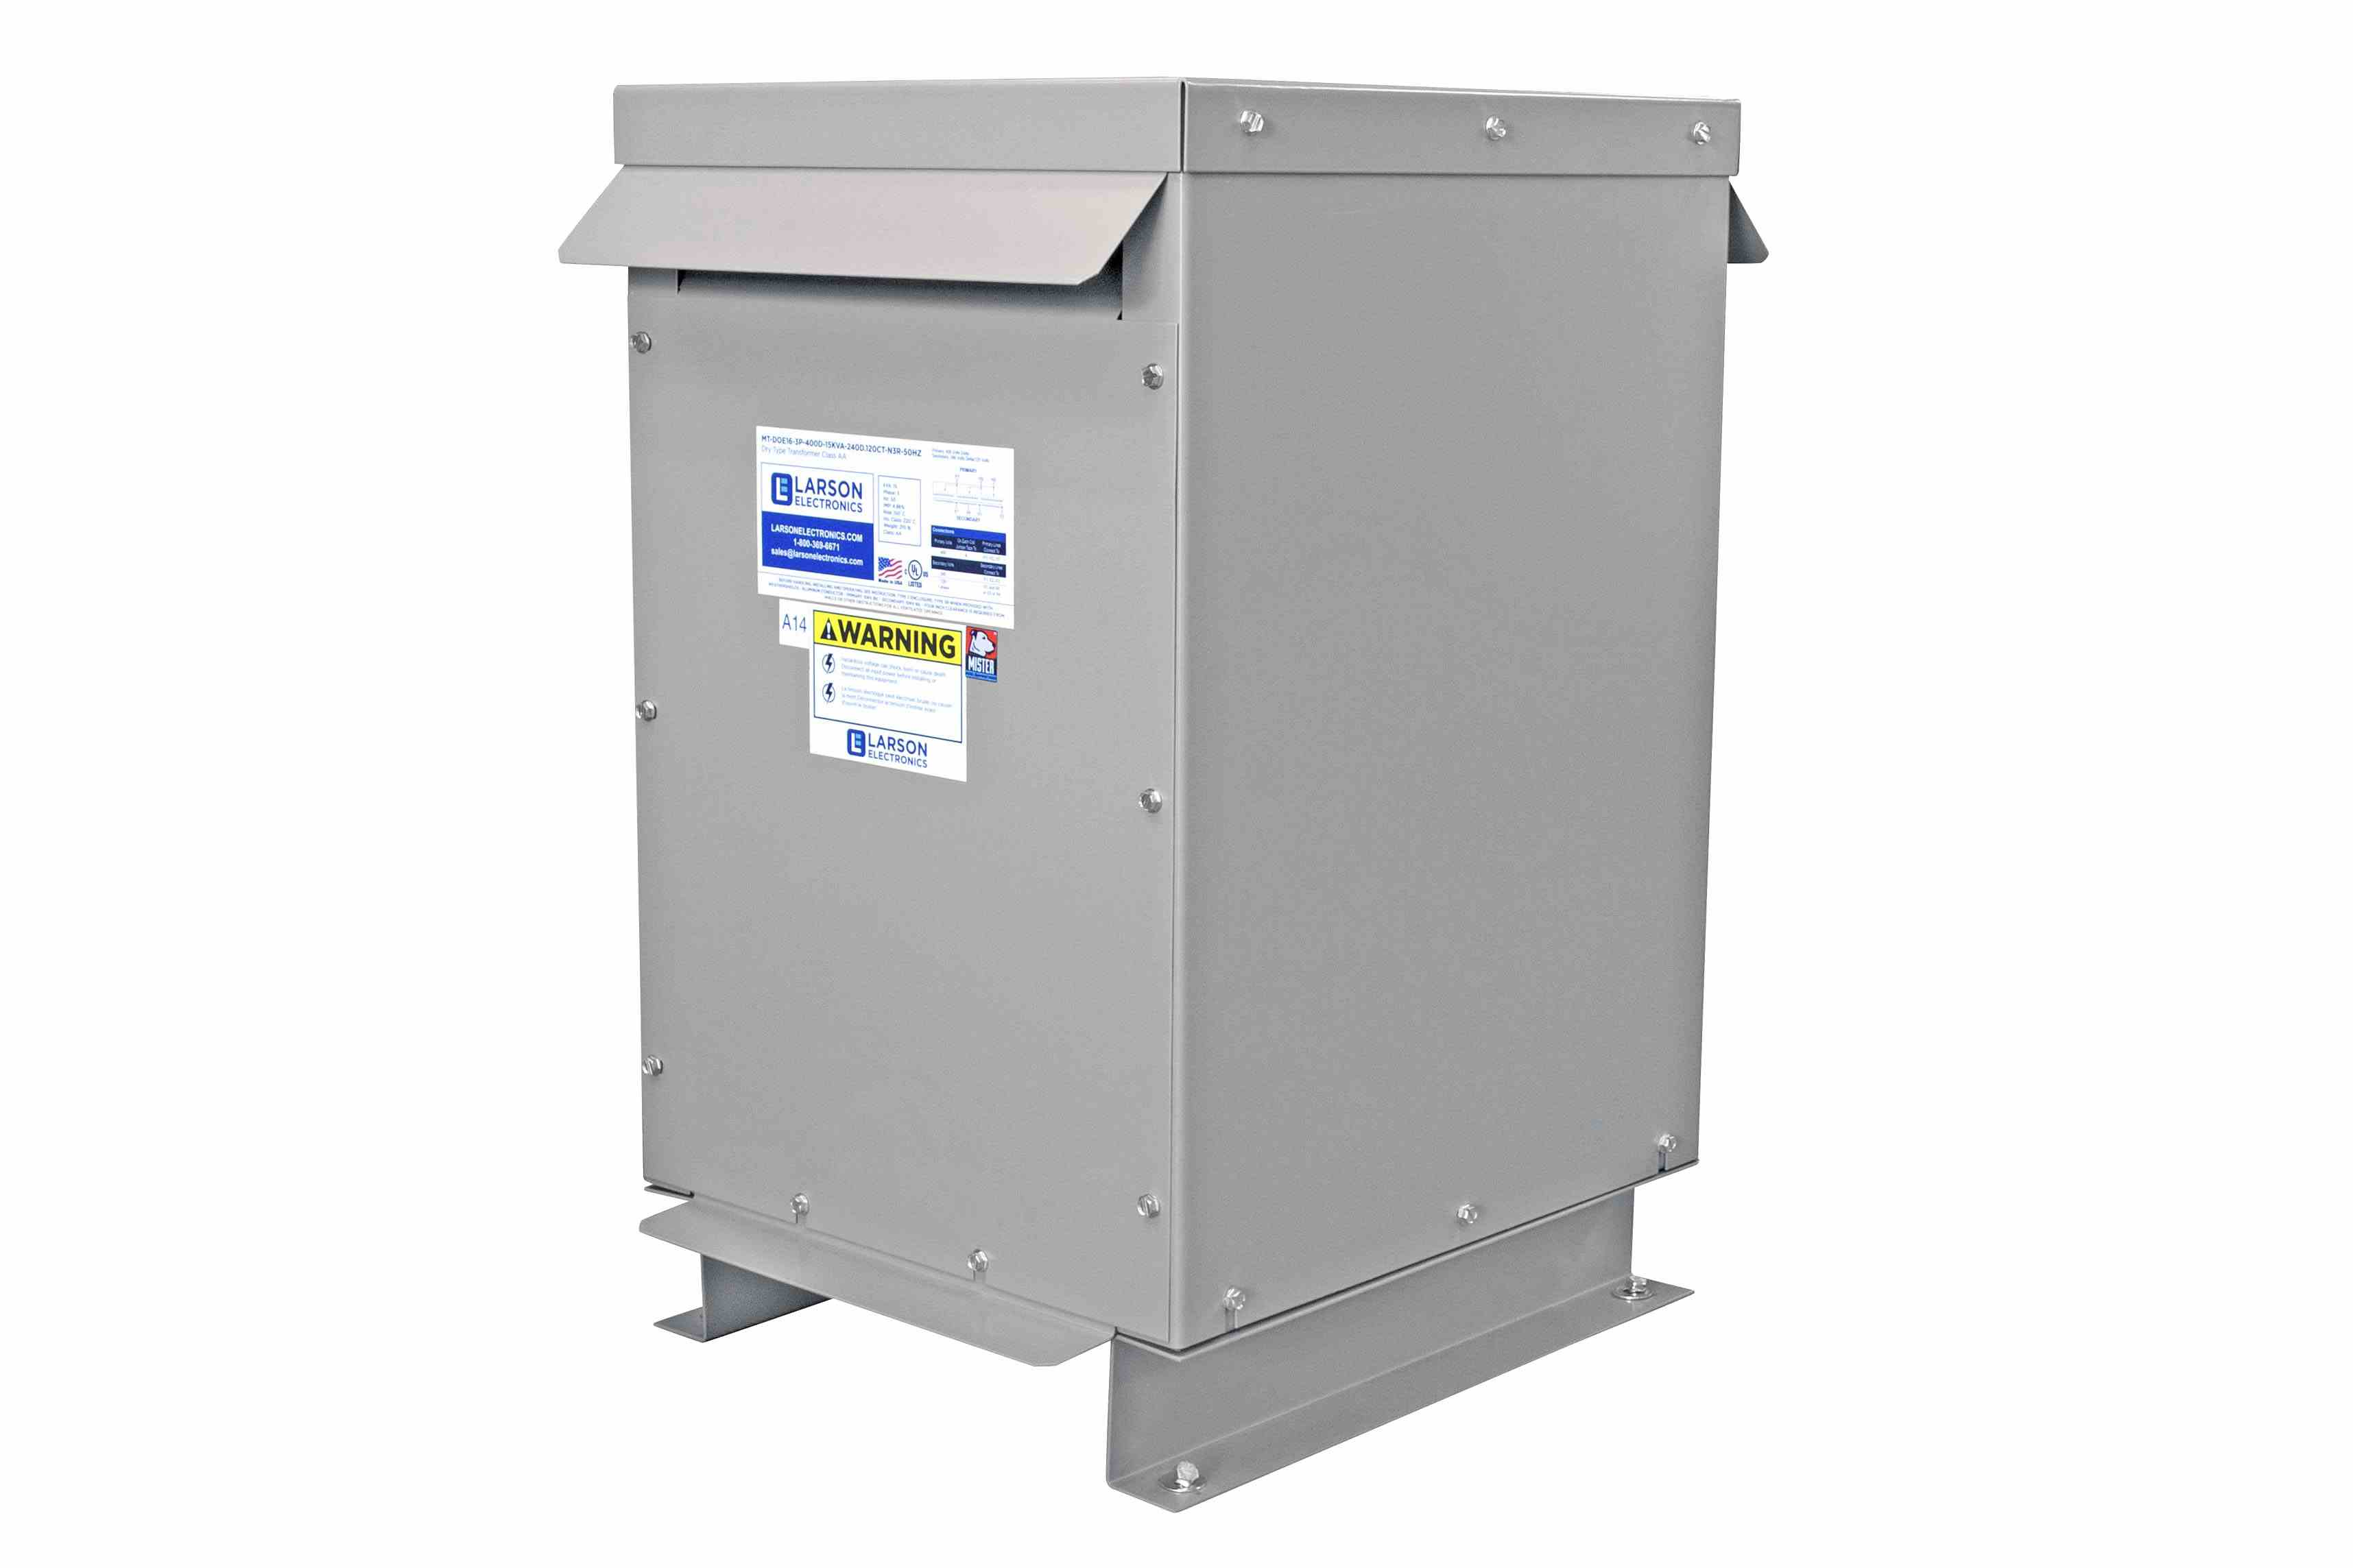 125 kVA 3PH Isolation Transformer, 480V Delta Primary, 400V Delta Secondary, N3R, Ventilated, 60 Hz